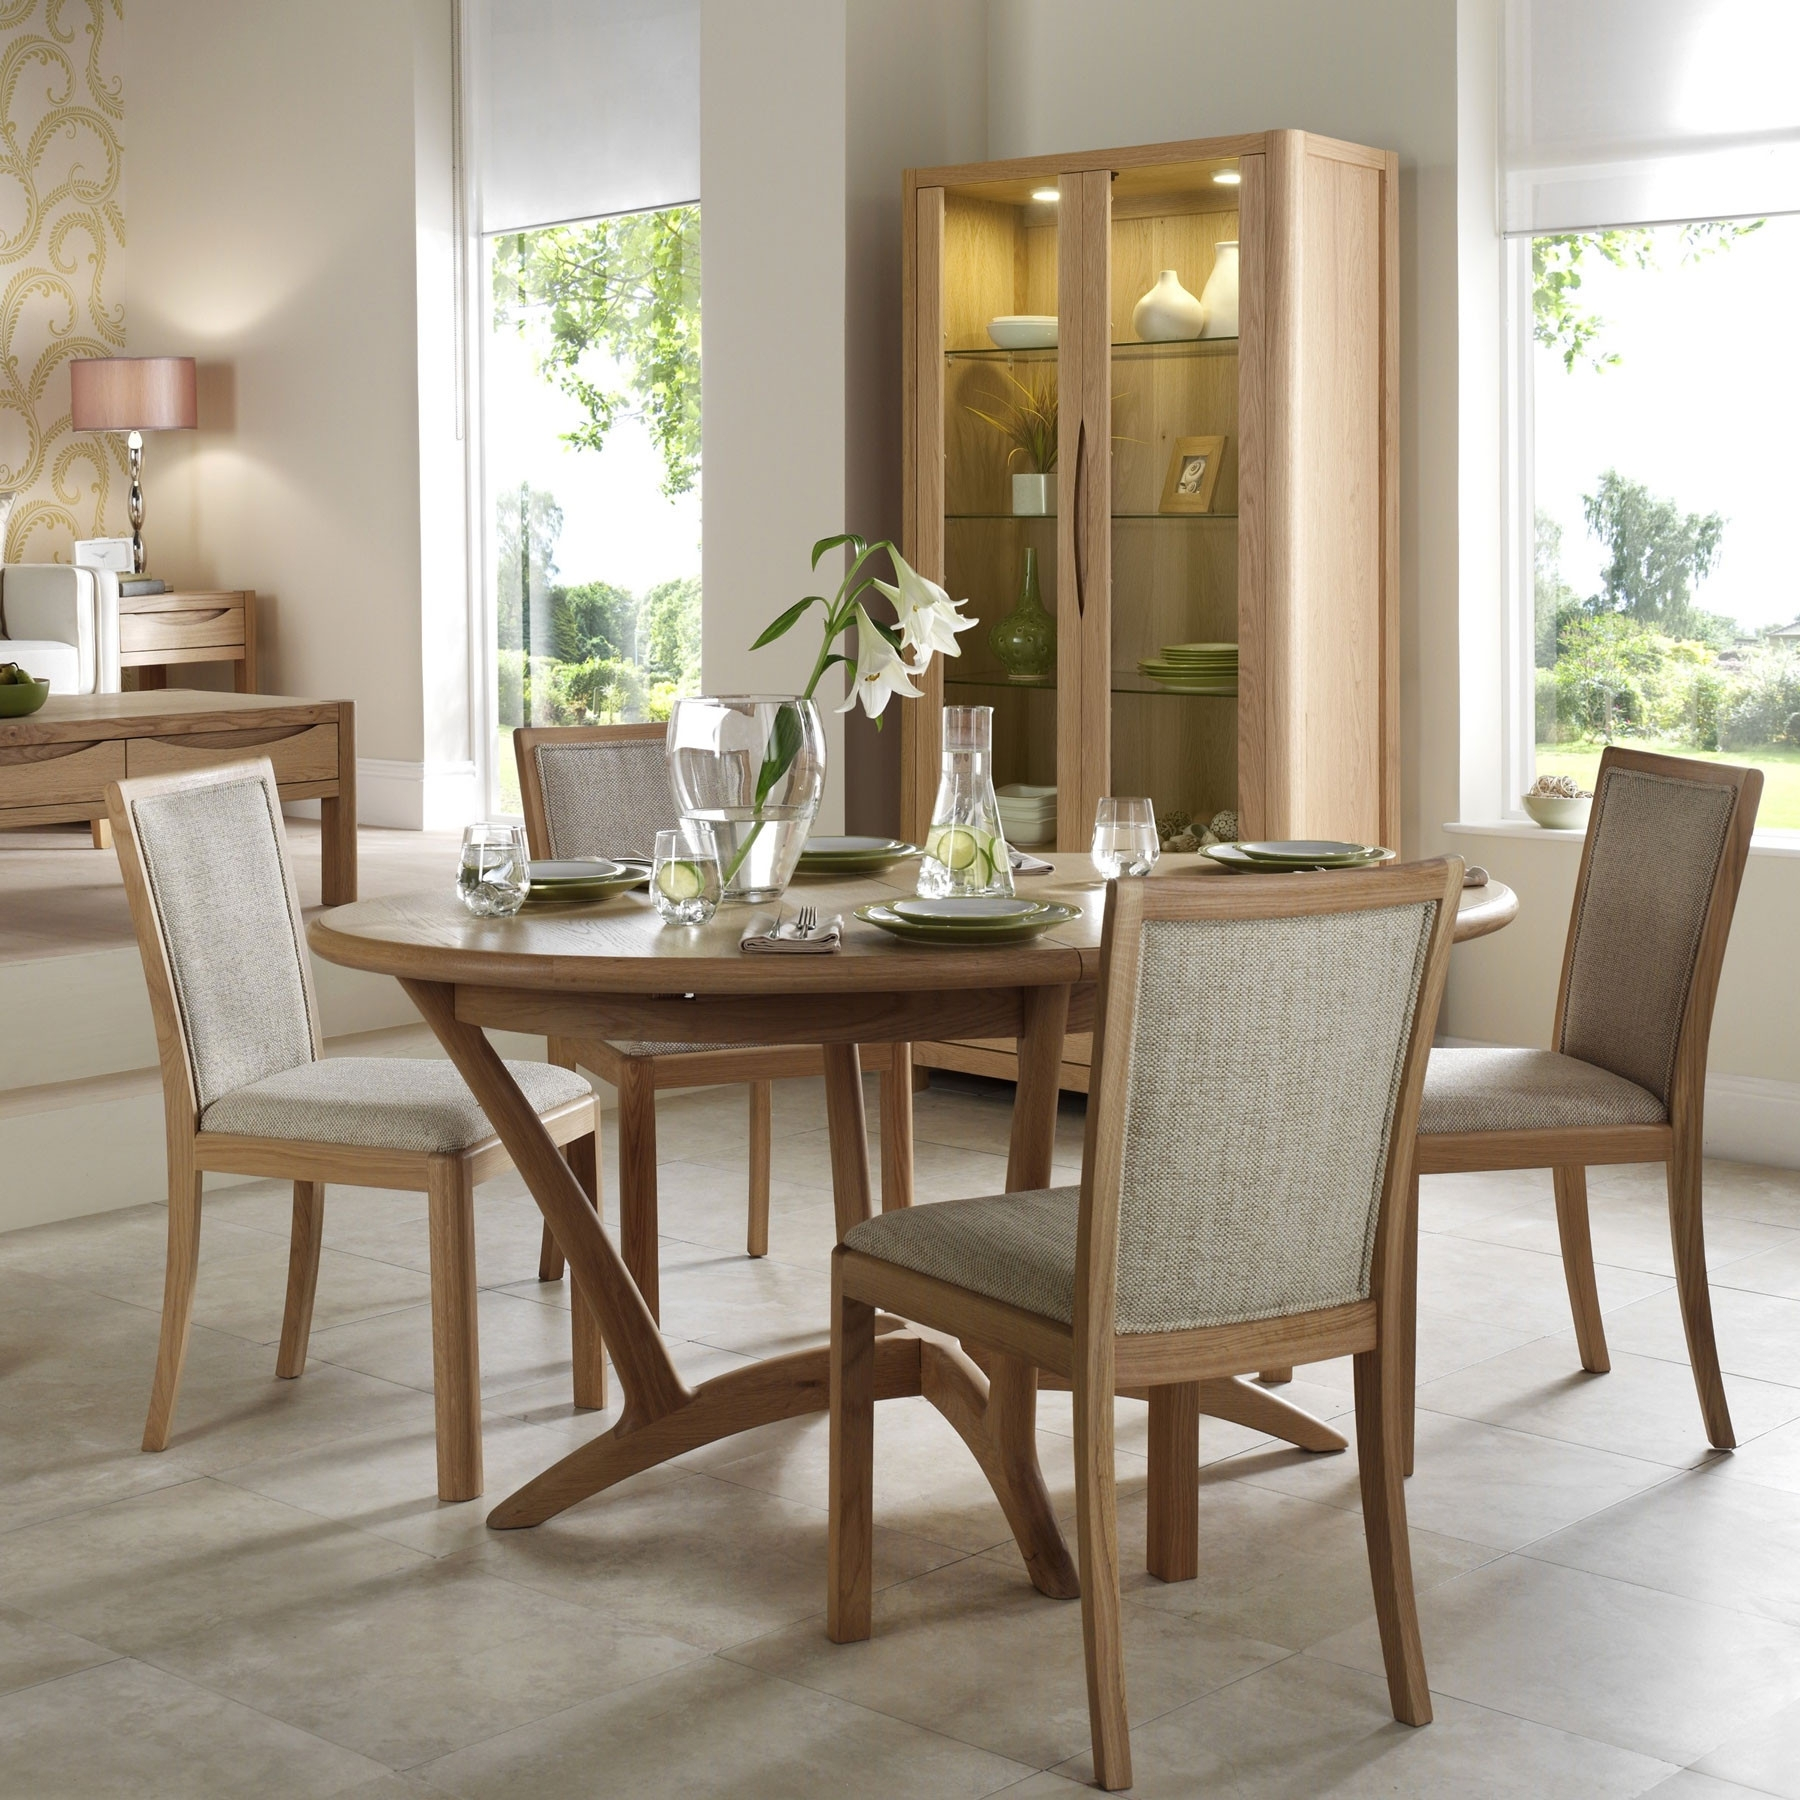 Preferred Light Oak Dining Tables And 6 Chairs Regarding Oslo Light Oak Oval Extending 210Cm Dining Table & 6 Fabric Chairs (View 5 of 25)